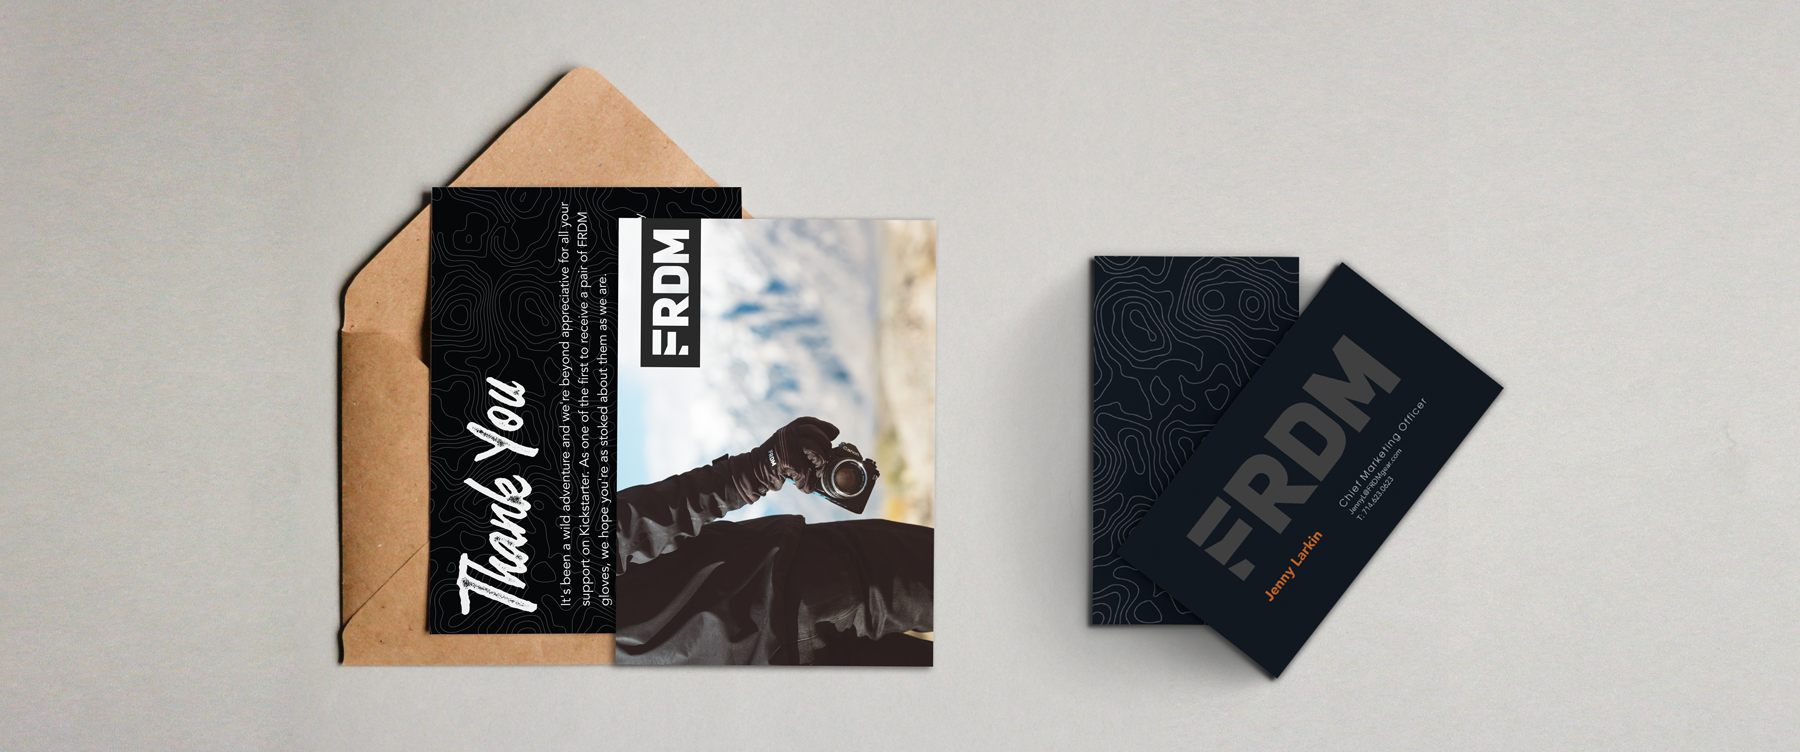 FRDM Gloves collateral design